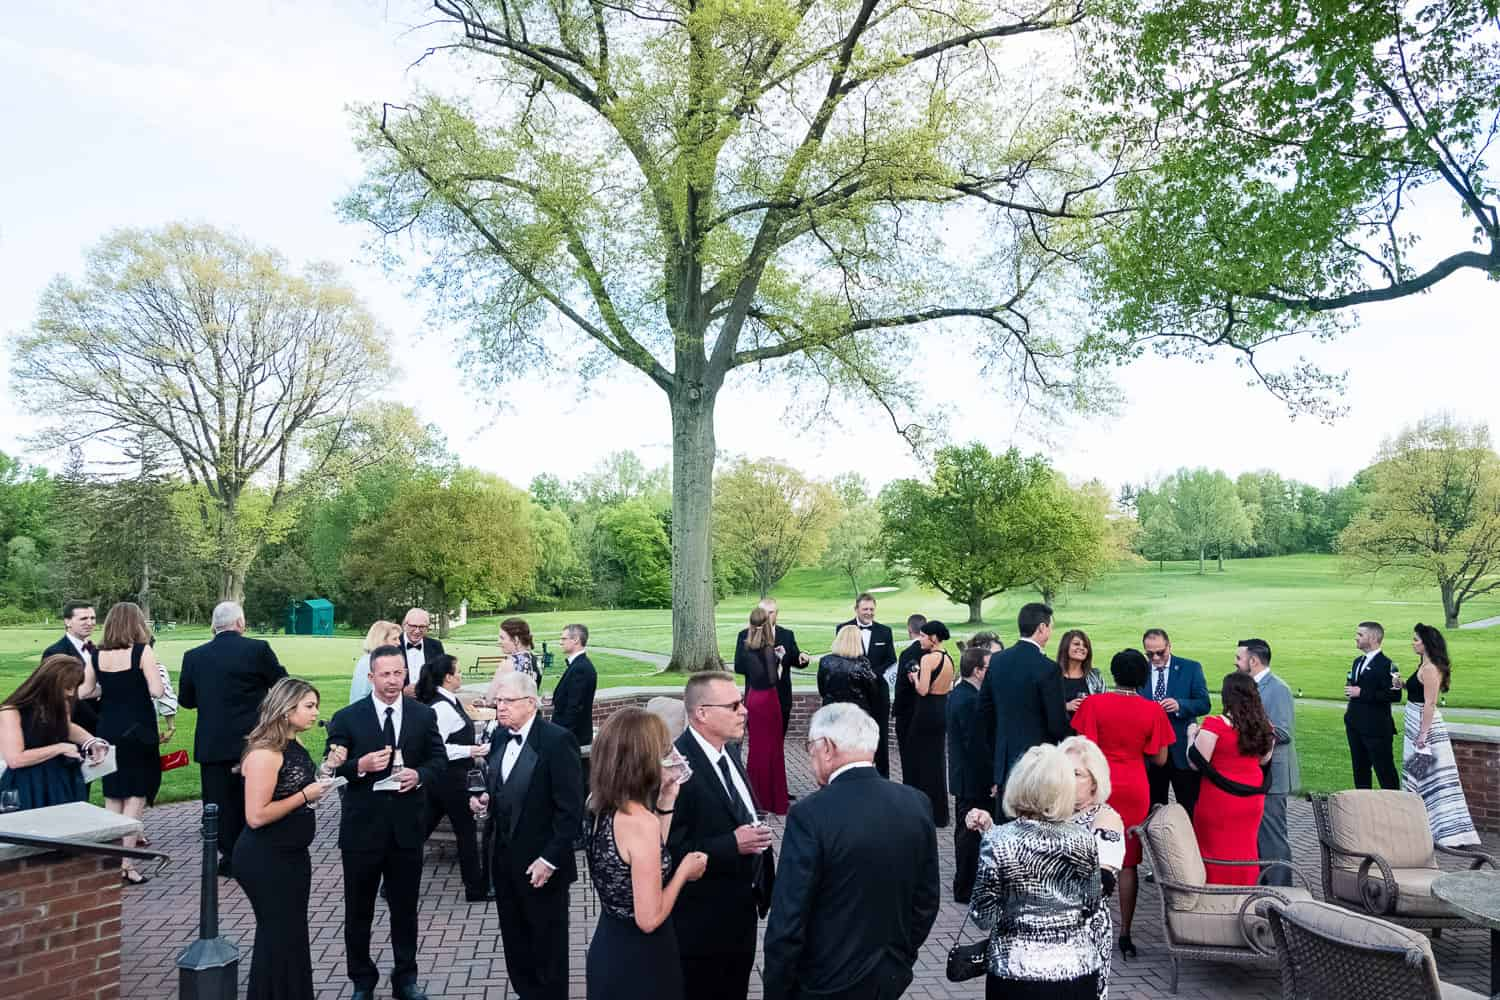 Event photograph of guests standing on patio at Oak Hill Country Club.